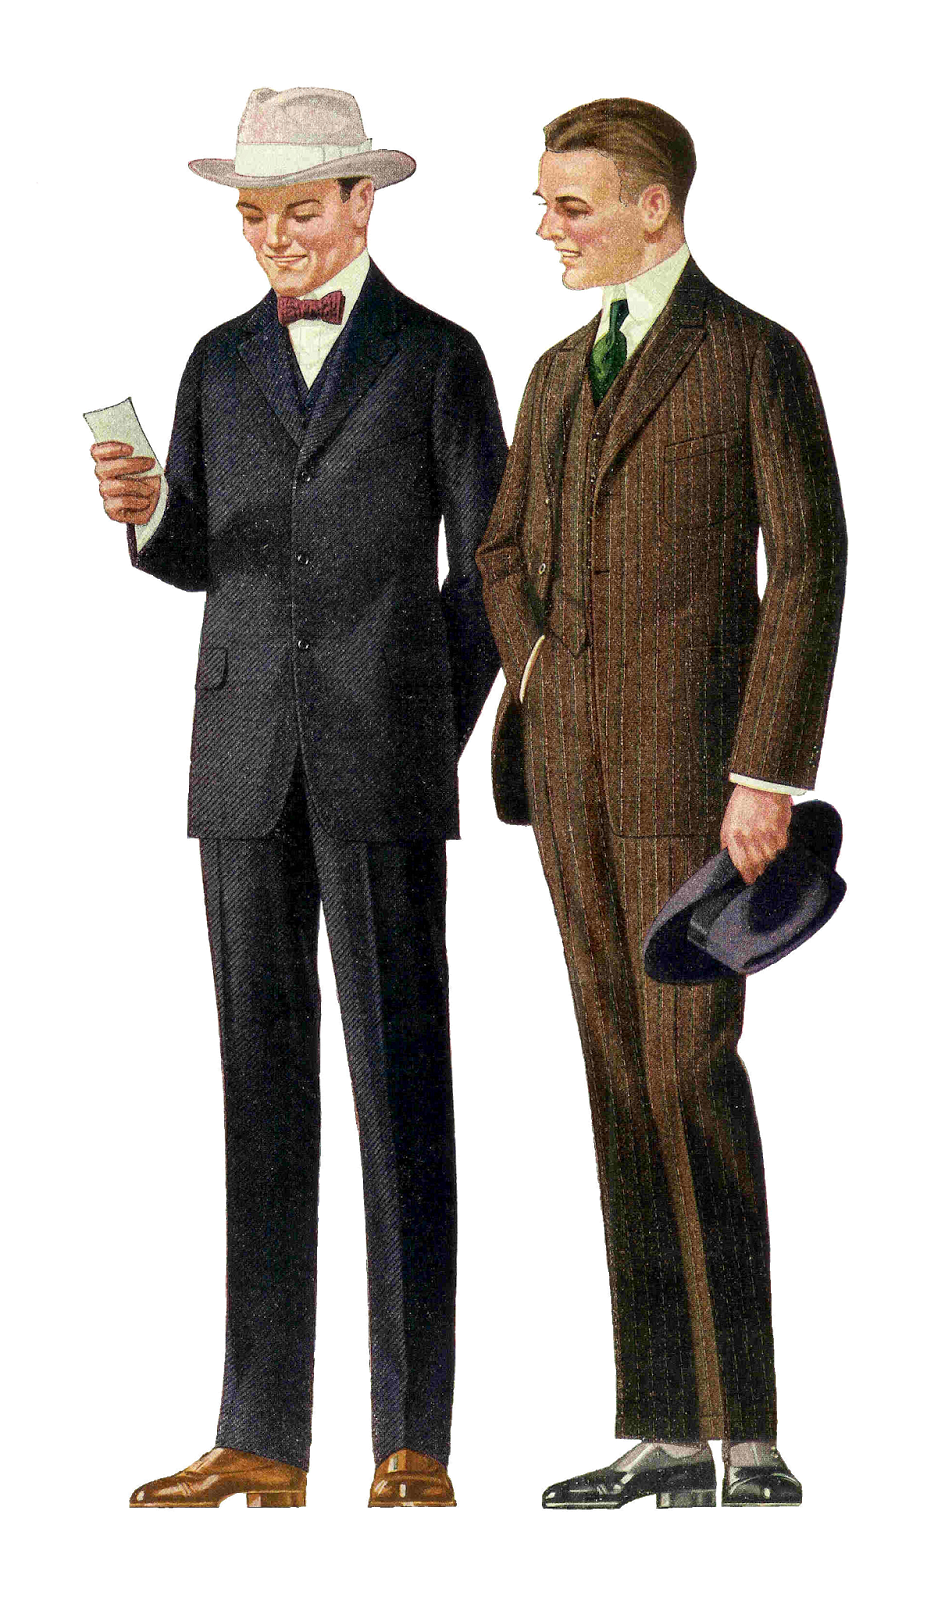 Free Fashion Clip Art  1915 Men S Suits 2 Vintage Fashion Graphics